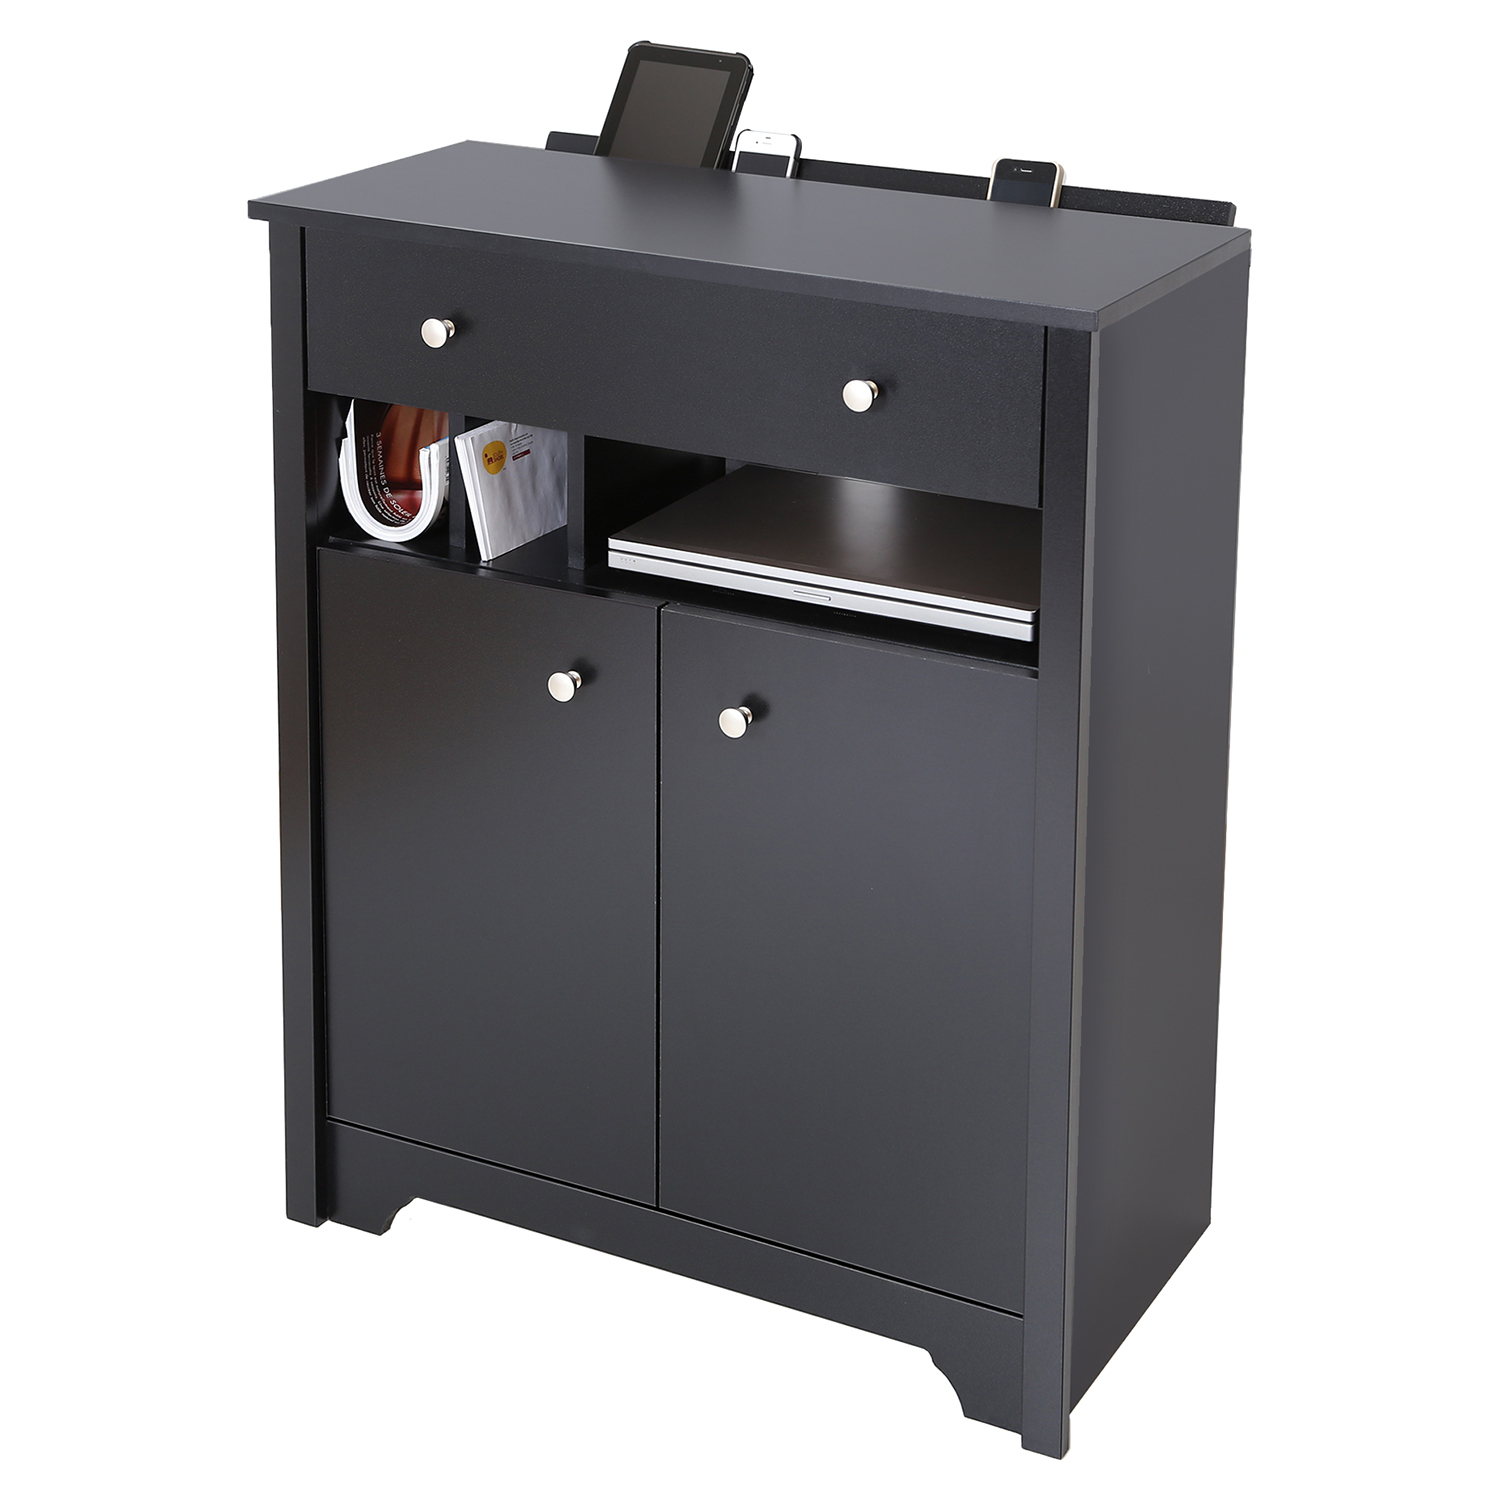 Vito Charging Station Cabinet - Pure Black - SS-3170790